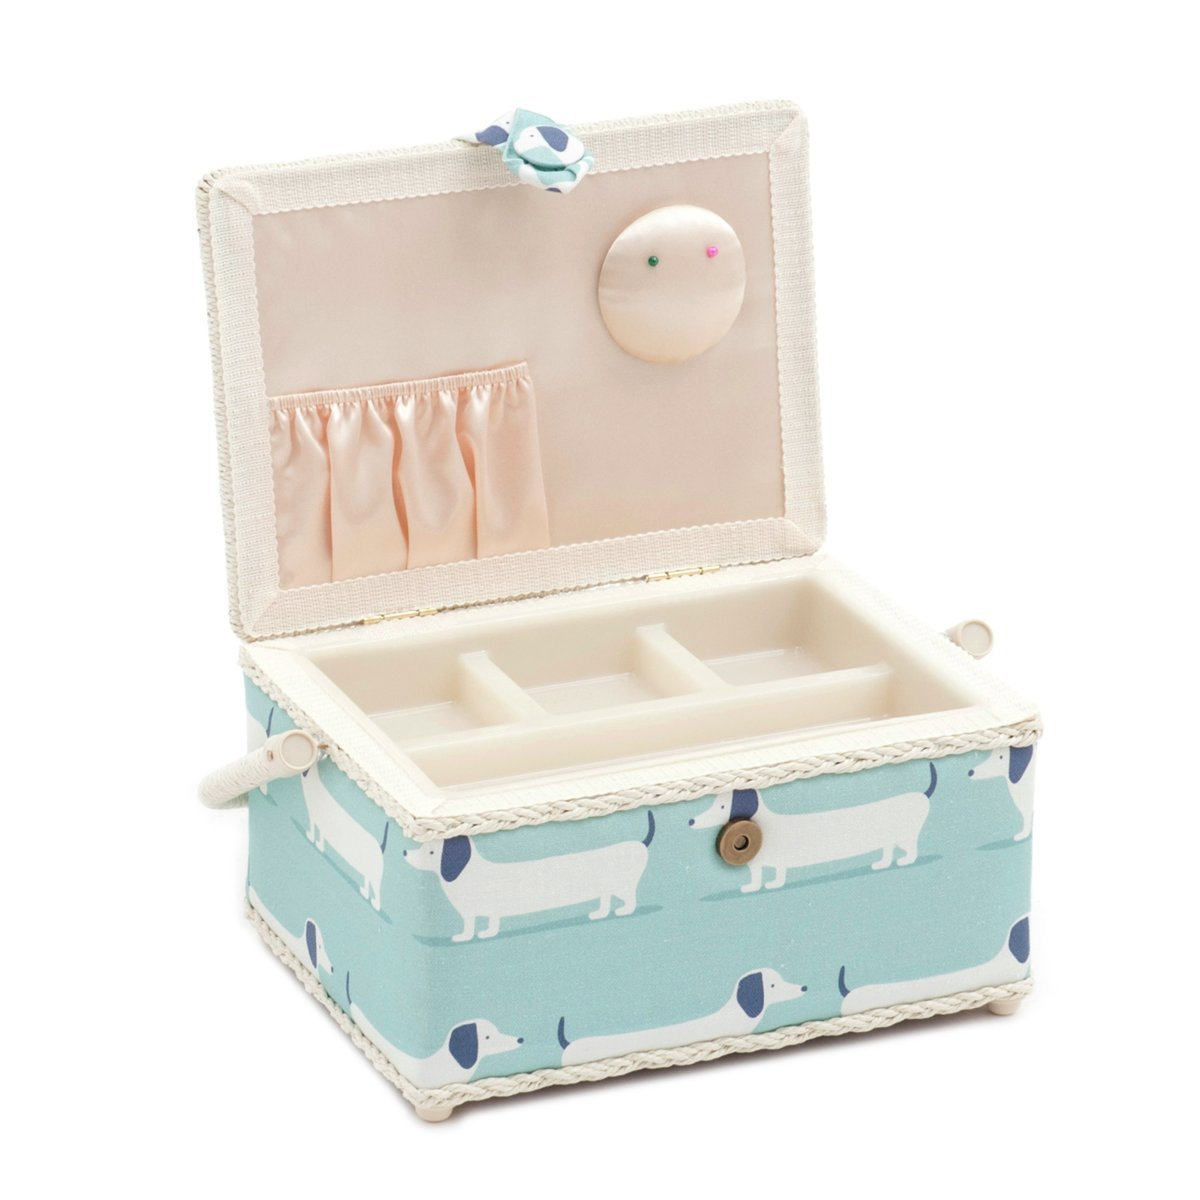 Hobby Gift 'Hound Dog Duck Egg' Medium Rectangle Sewing Box 18.5 x 26 x 15cm (d/w/h)